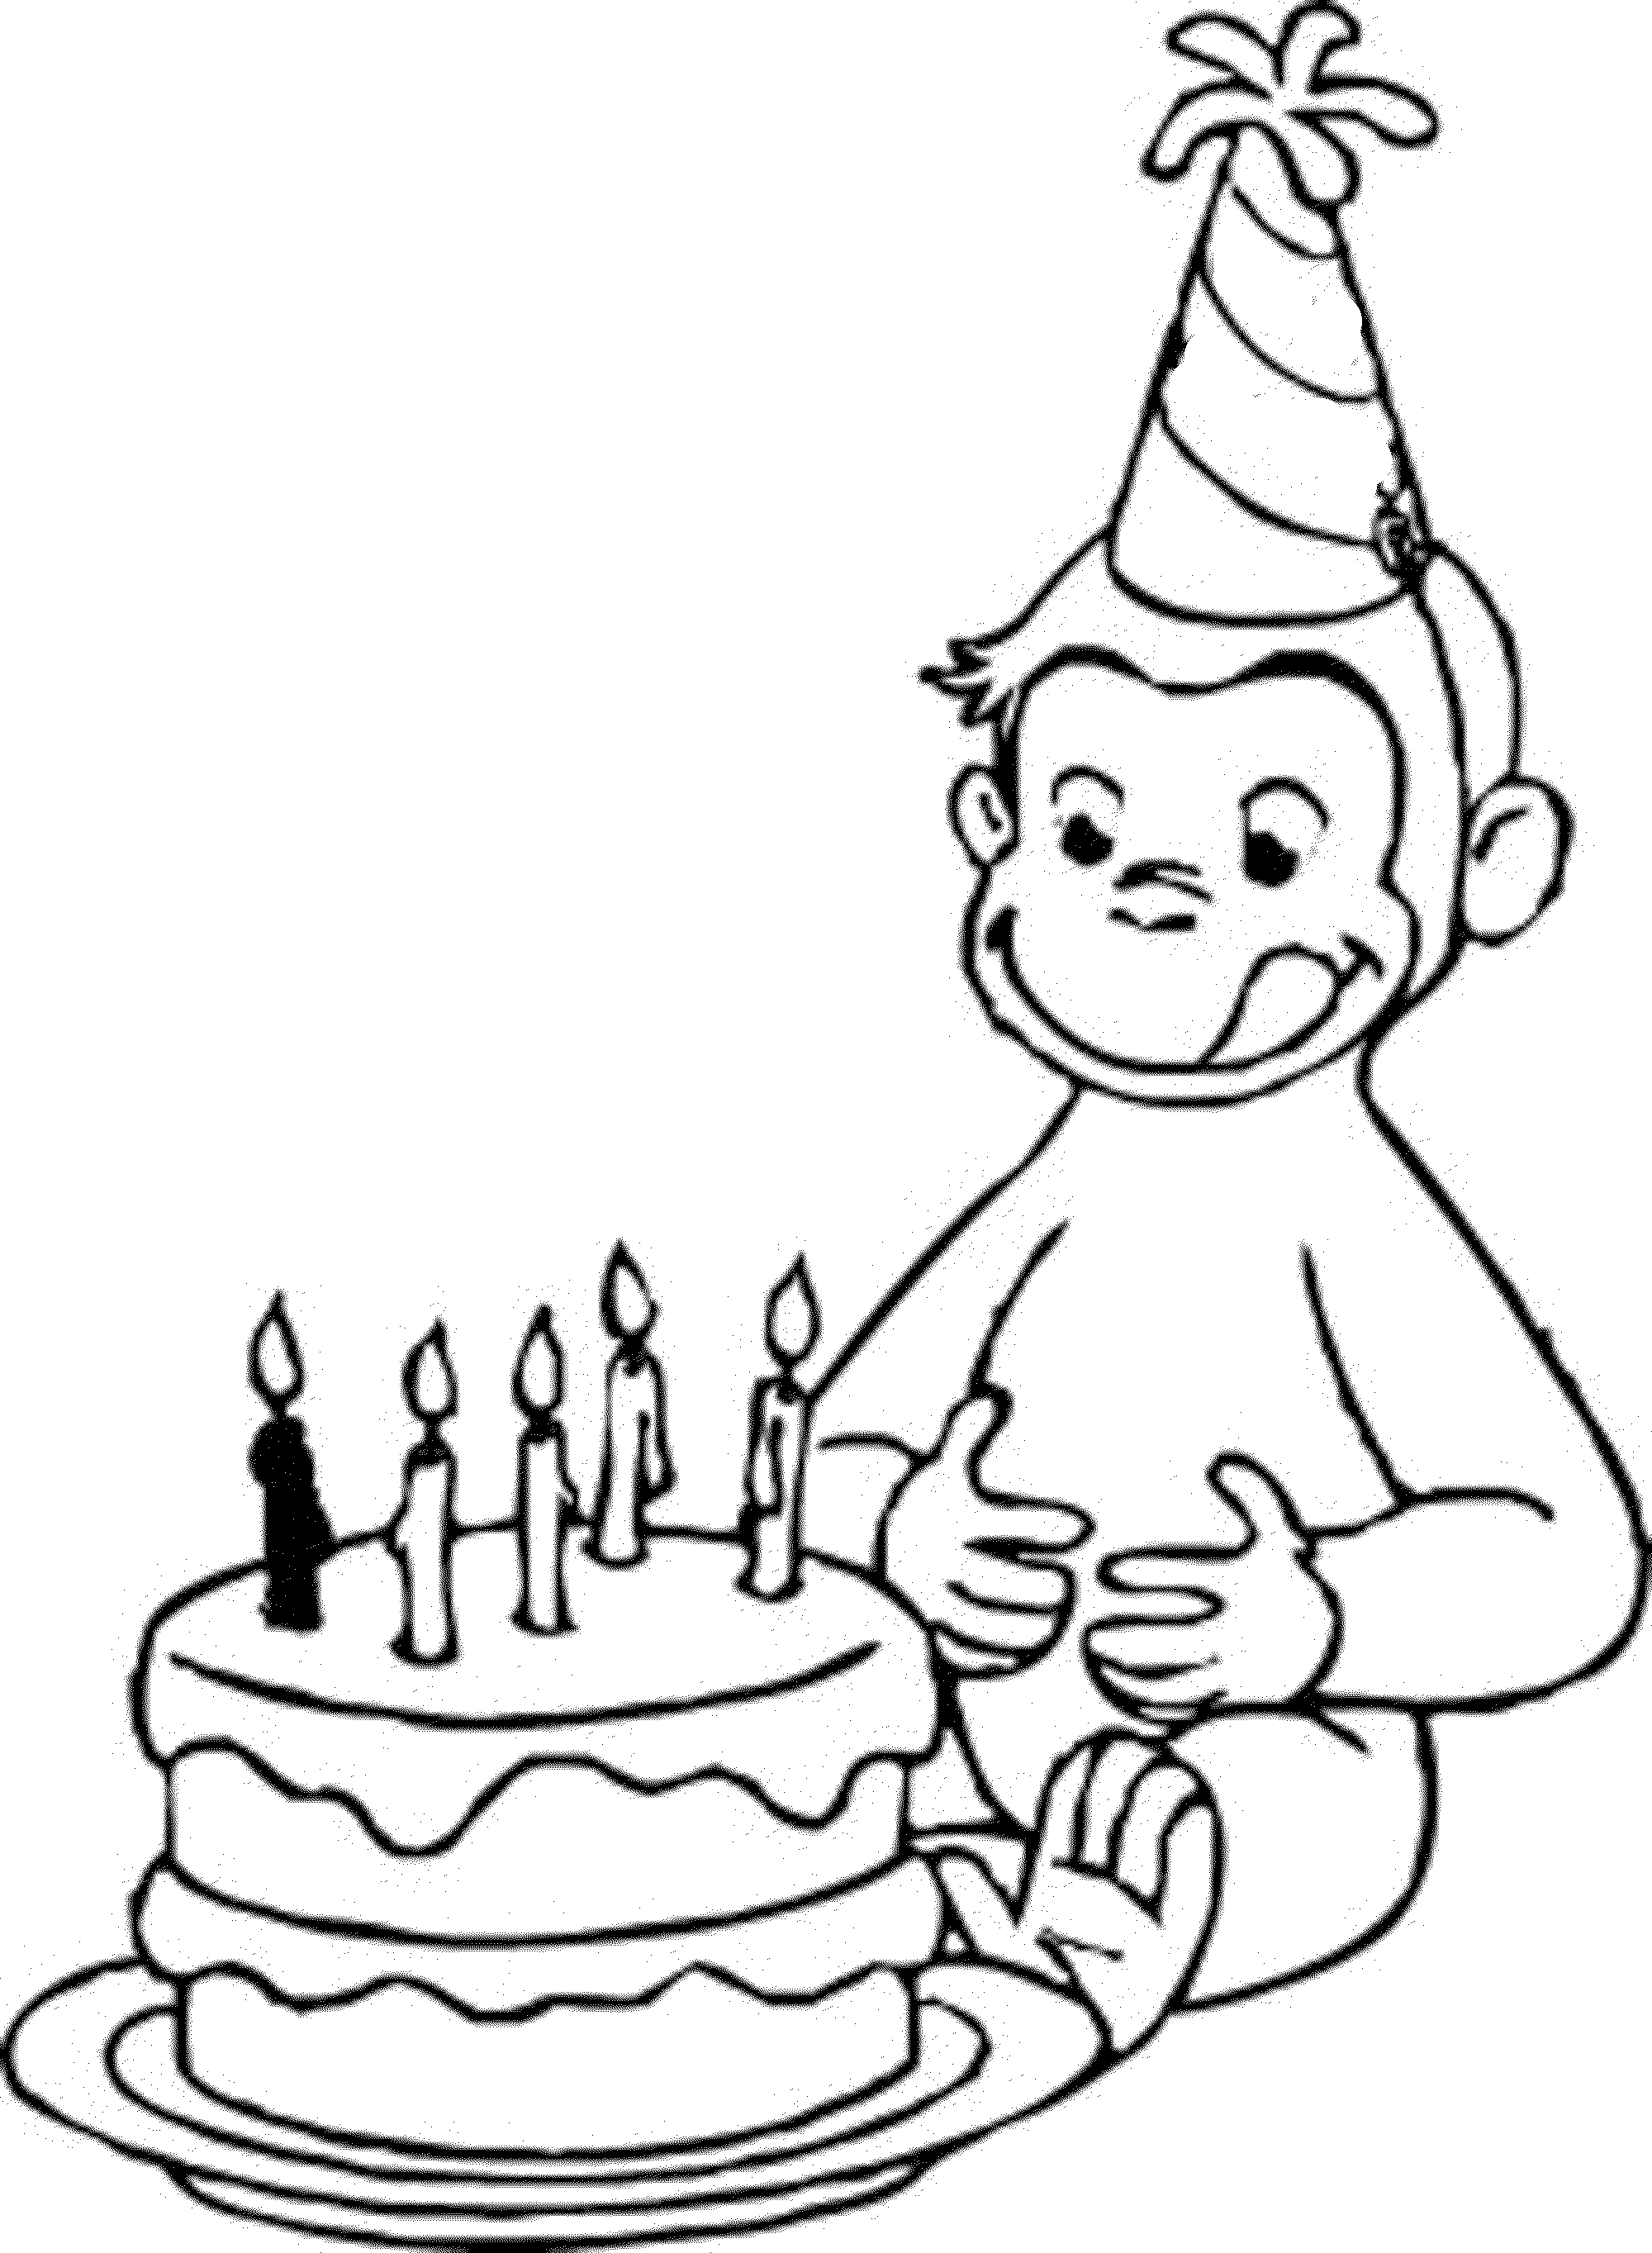 free printable curious george coloring pages curious george coloring pages to download and print for free free printable pages george coloring curious